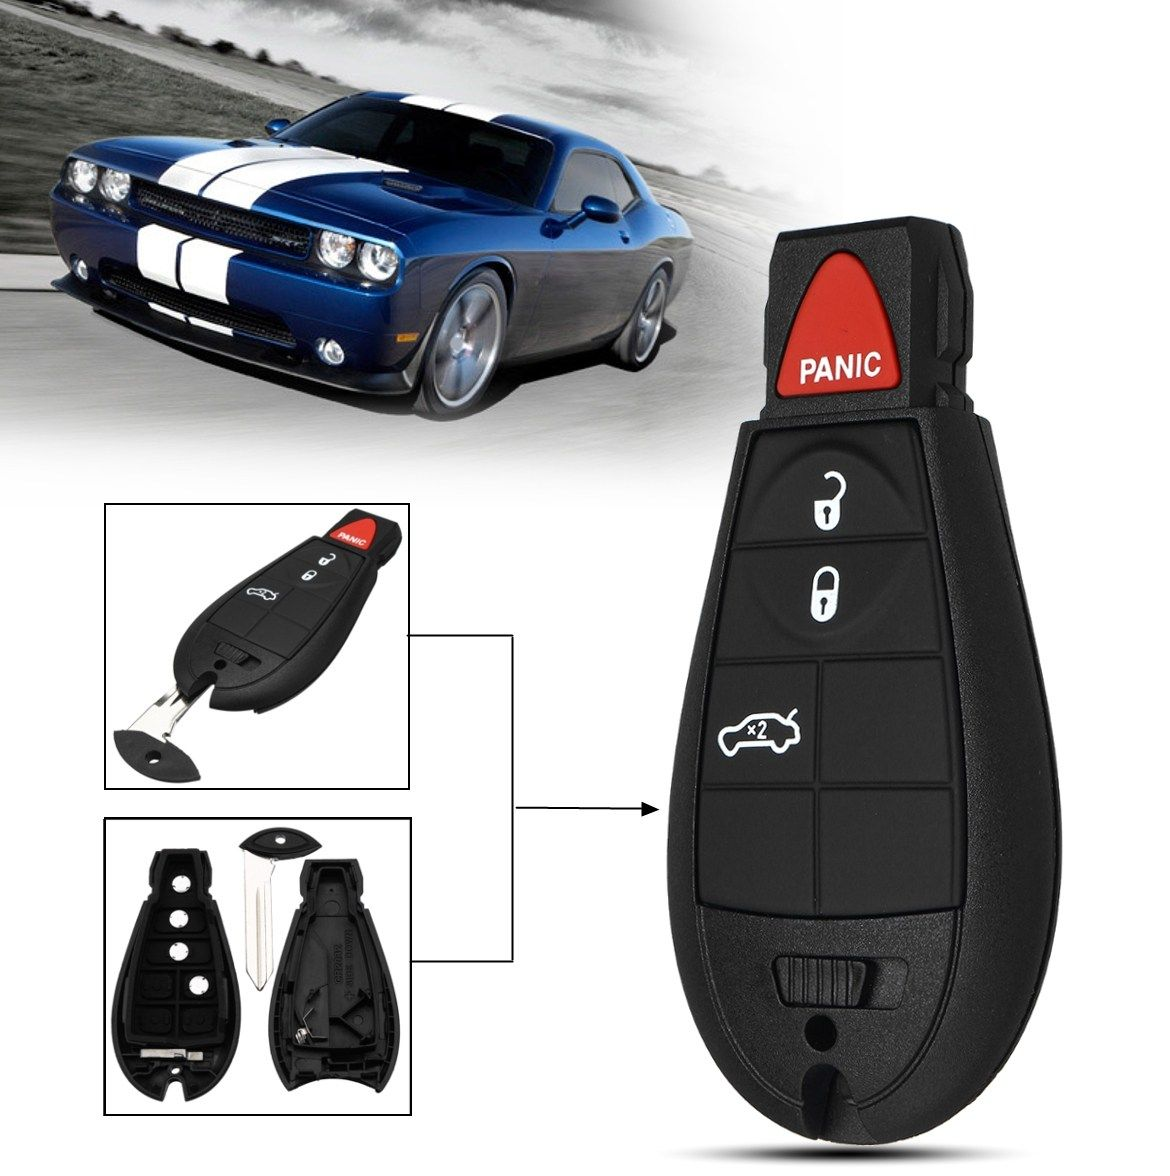 4+3 Buttons Car Remote Key Fob Case Shell For Dodge/Jeep/Chrysler/Magnum Durango Journey Ram Commander 300 1500 2500 3500 4500